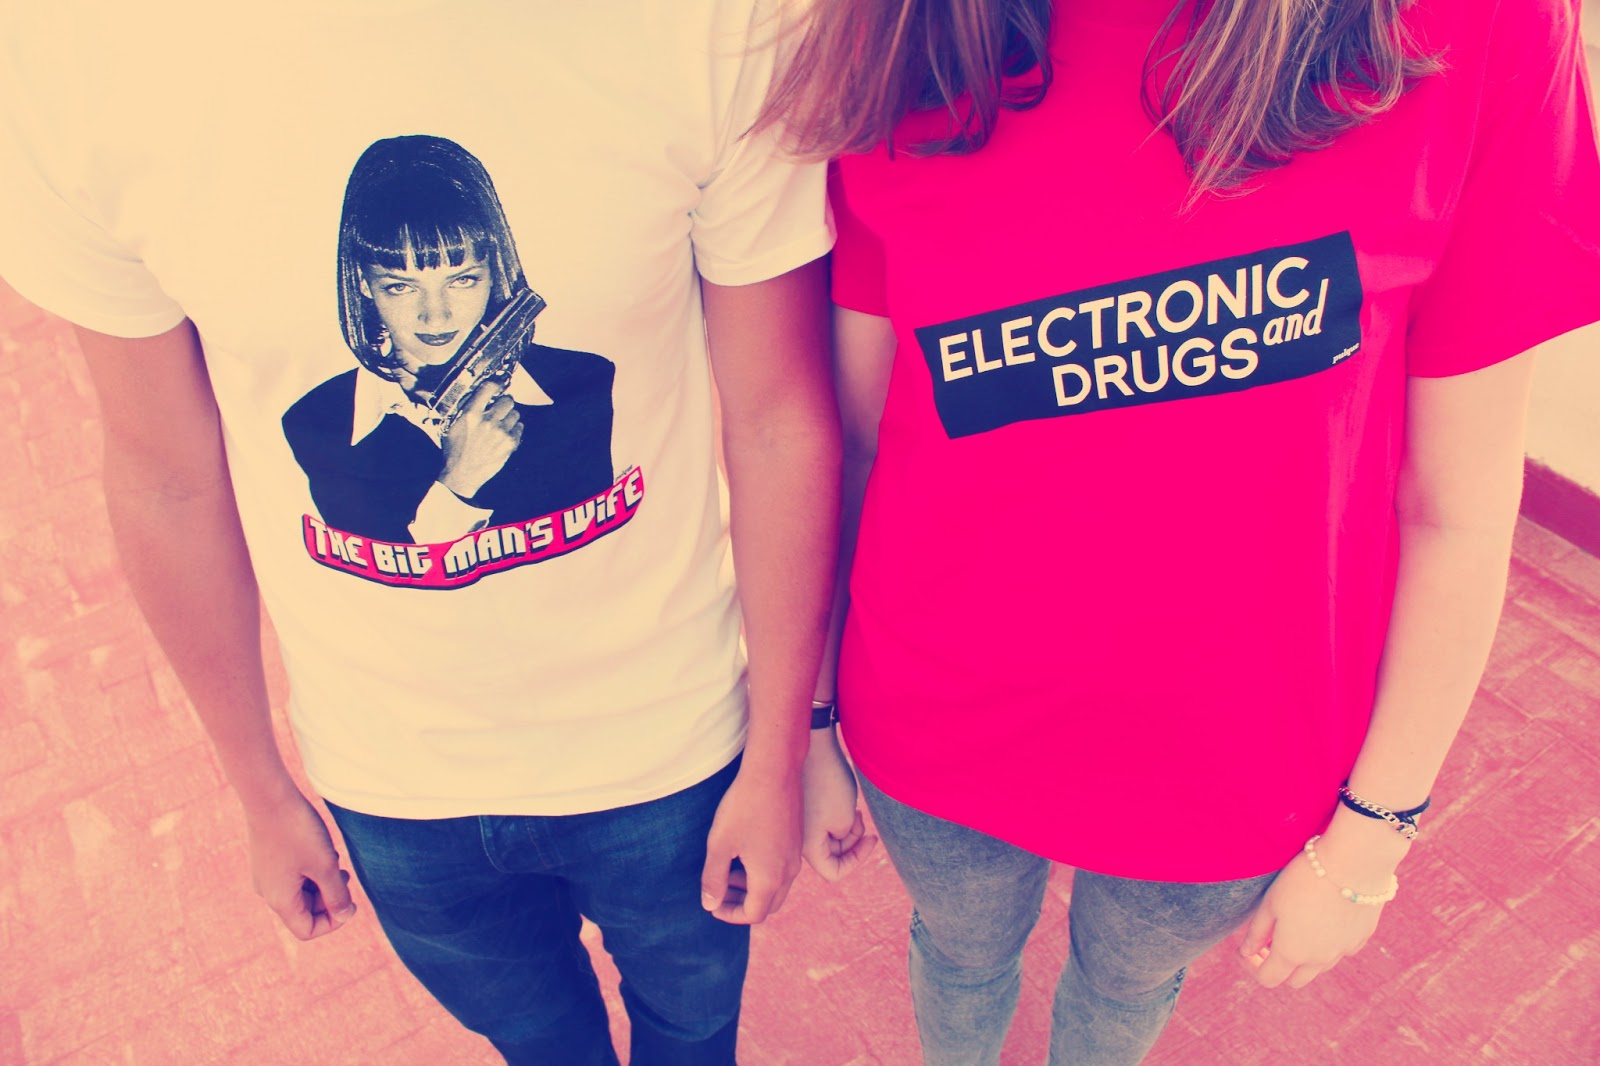 The Big Man's Wife y Electronic and Drugs